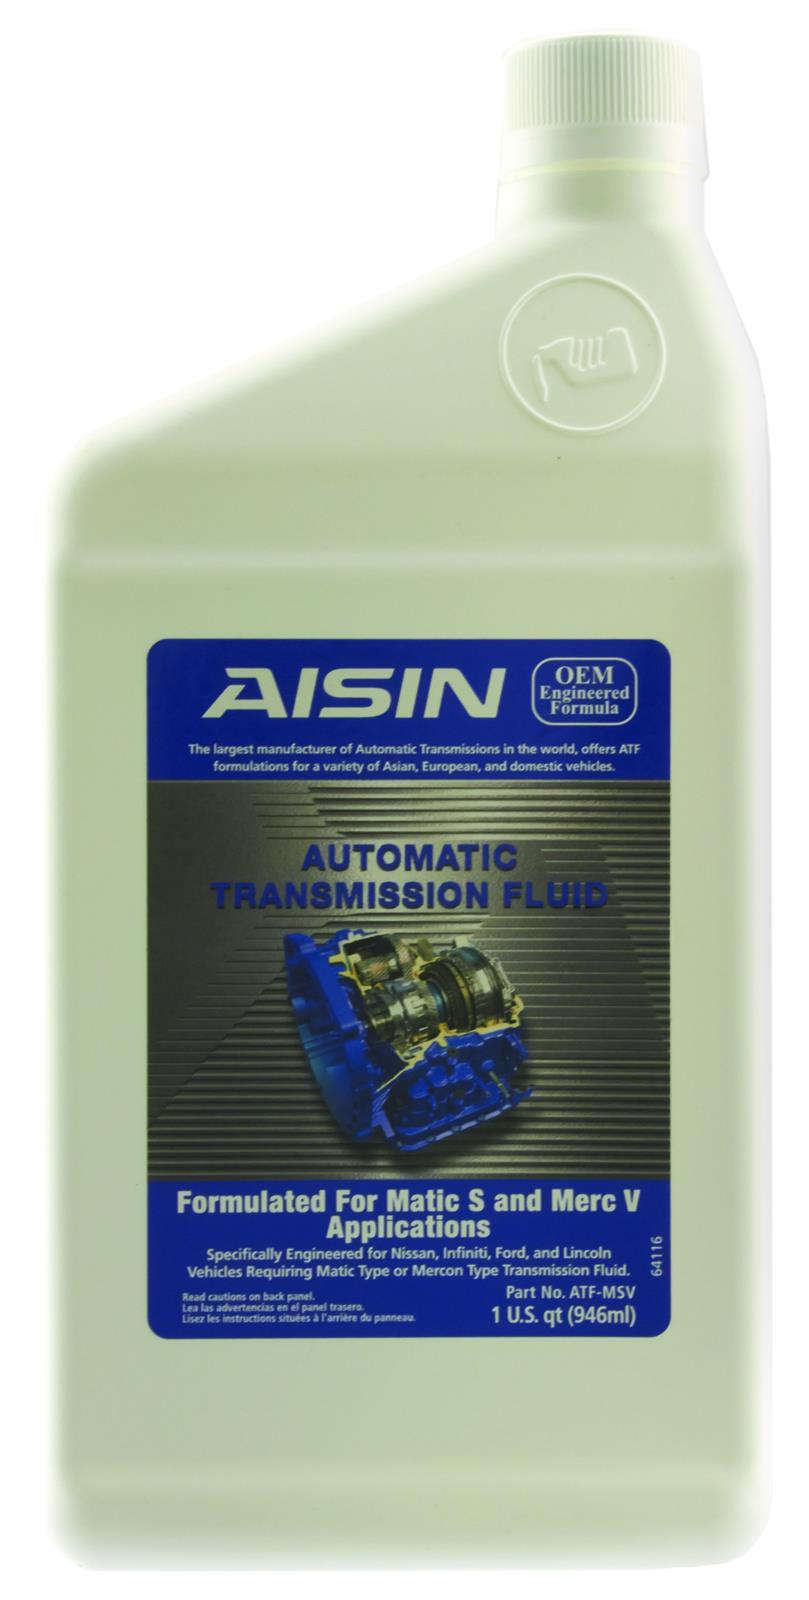 Aisin Automatic Transmission Fluid ATF-MSV - Free Shipping on Orders Over  $49 at Summit Racing